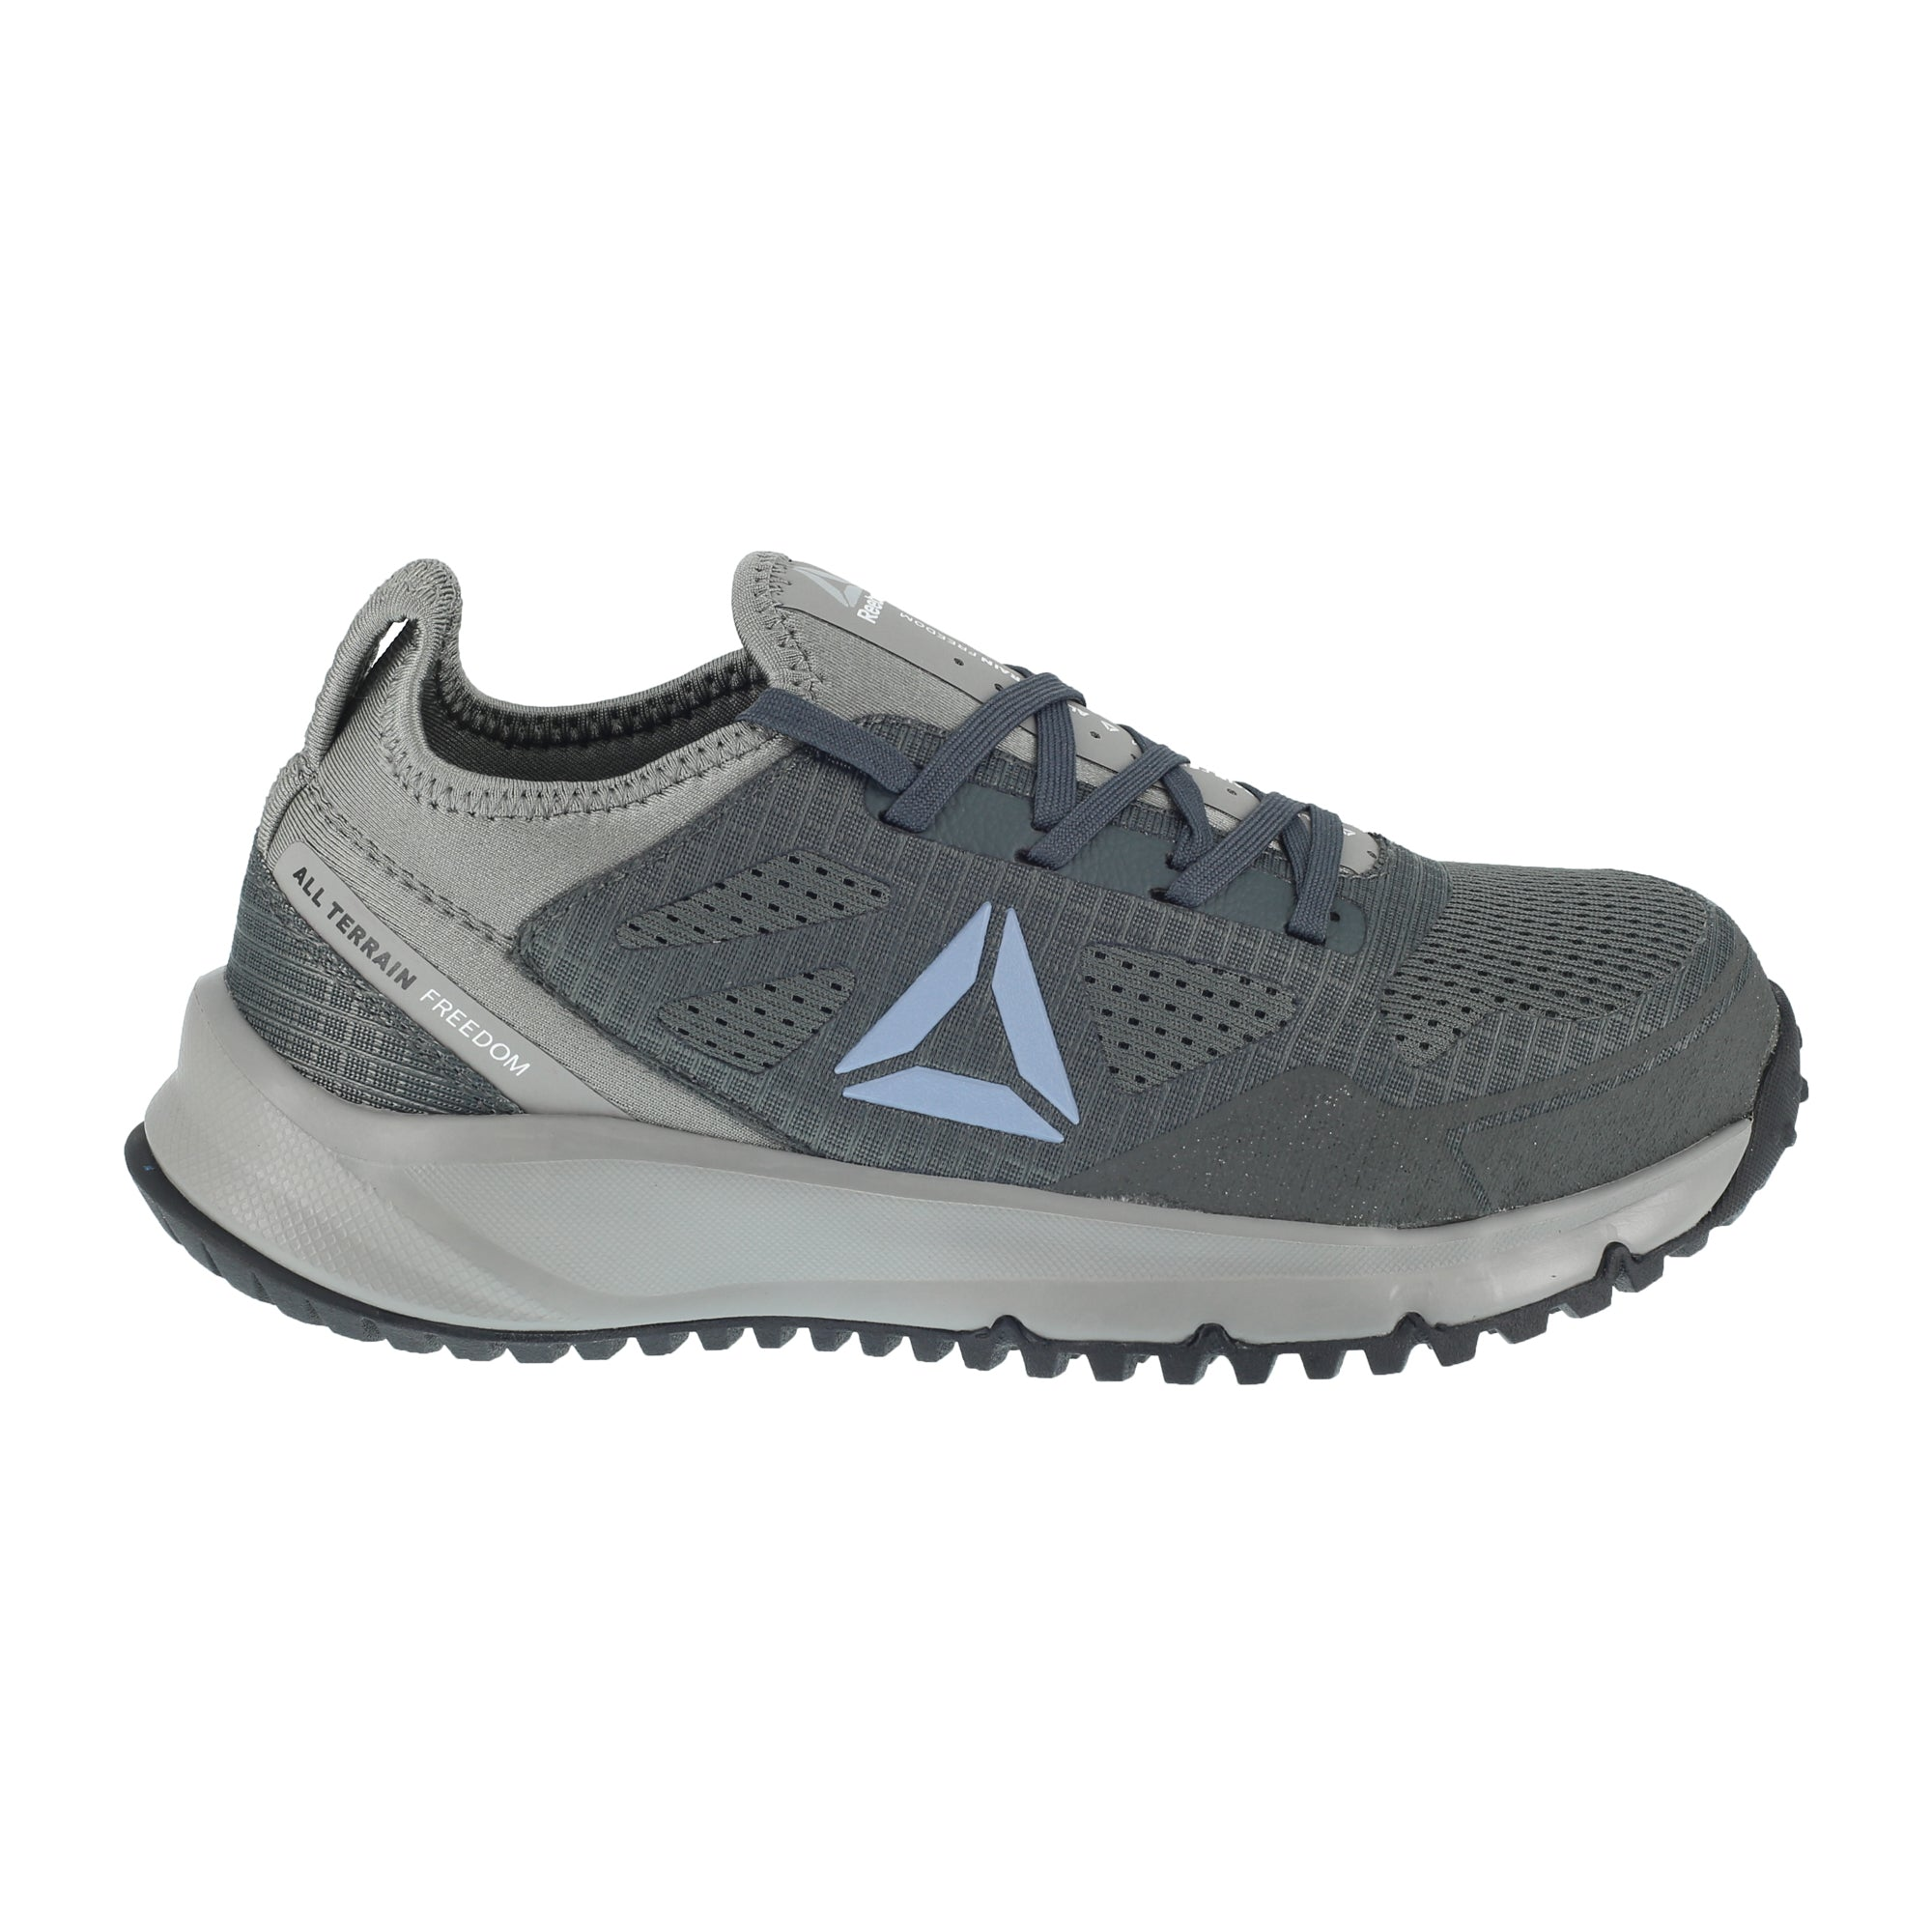 Reebok Work All Terrain Work RB094 Steel Toe Work Shoe(Women's) -Flint Grey/Black Mesh/Ripstop Fabric Buy Cheap Exclusive Sale Release Dates Sale The Cheapest Manchester Sale Online Cheap Price Top Quality Z3QfNQN6O